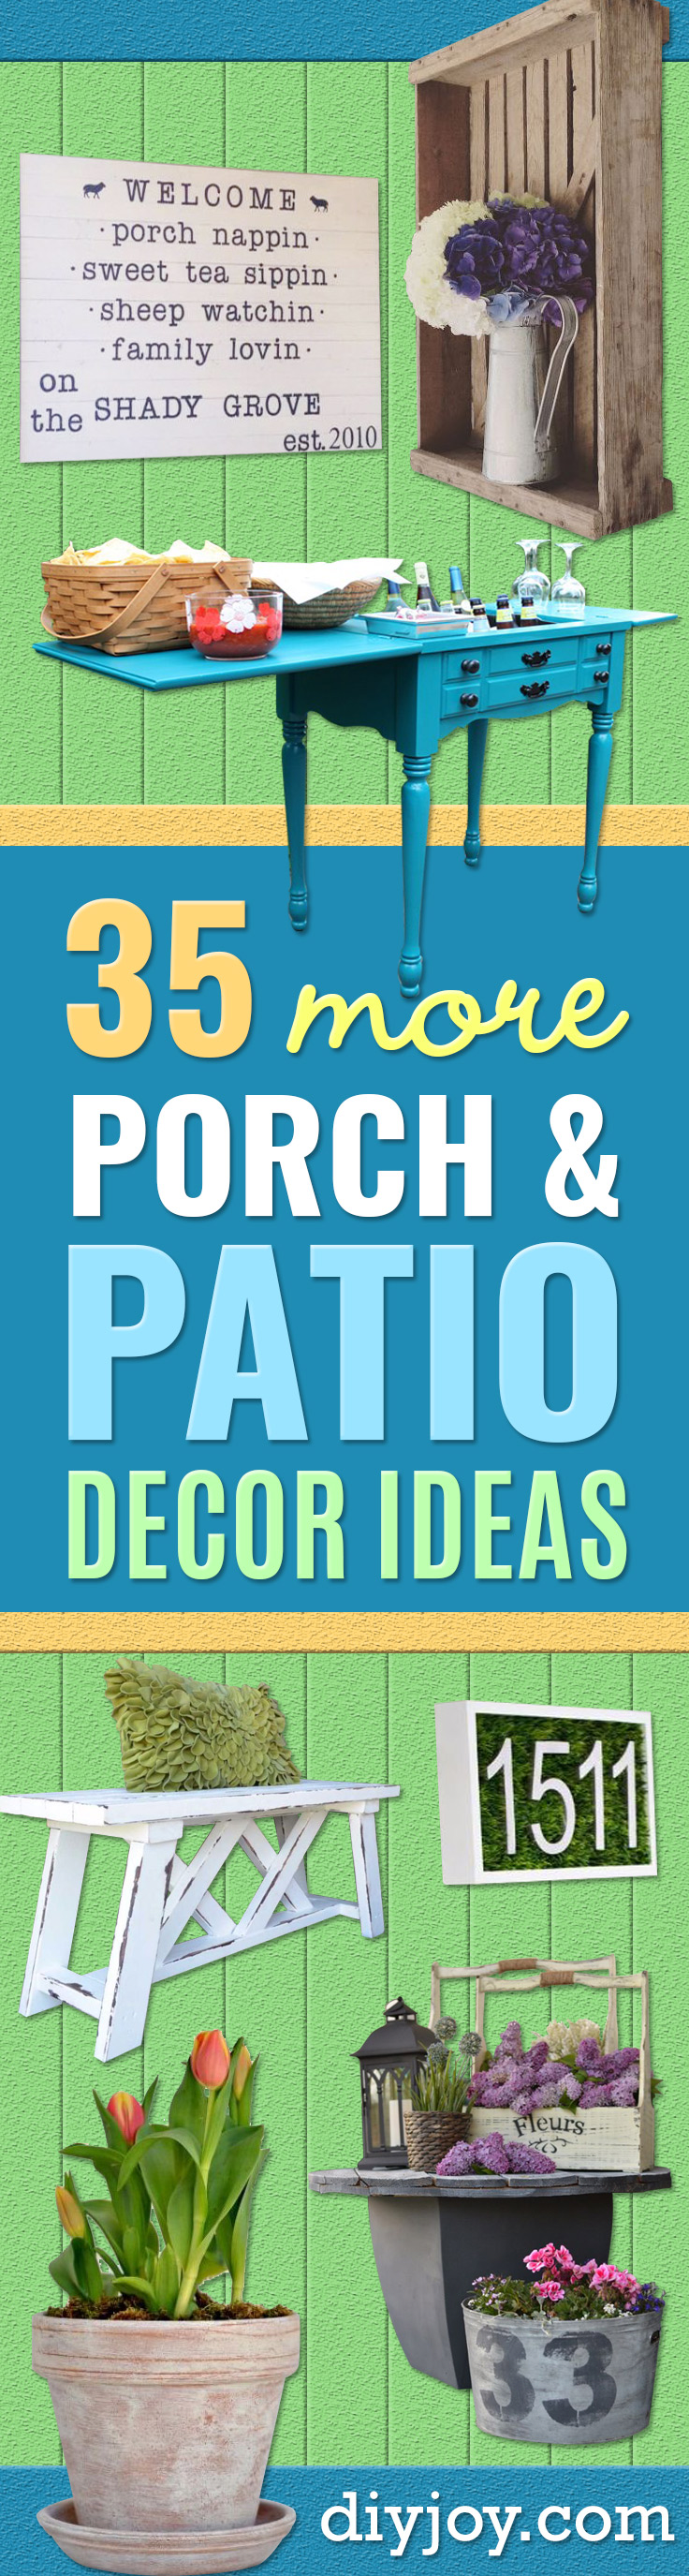 DIY Porch and Patio Ideas - Decor Projects and Furniture Tutorials You Can Build for the Outdoors - Lights and Lighting, Mason Jar Crafts, Rocking Chairs, Wreaths, Swings, Bench, Cushions, Chairs, Daybeds and Pallet Signs http://diyjoy.com/diy-porch-patio-decor